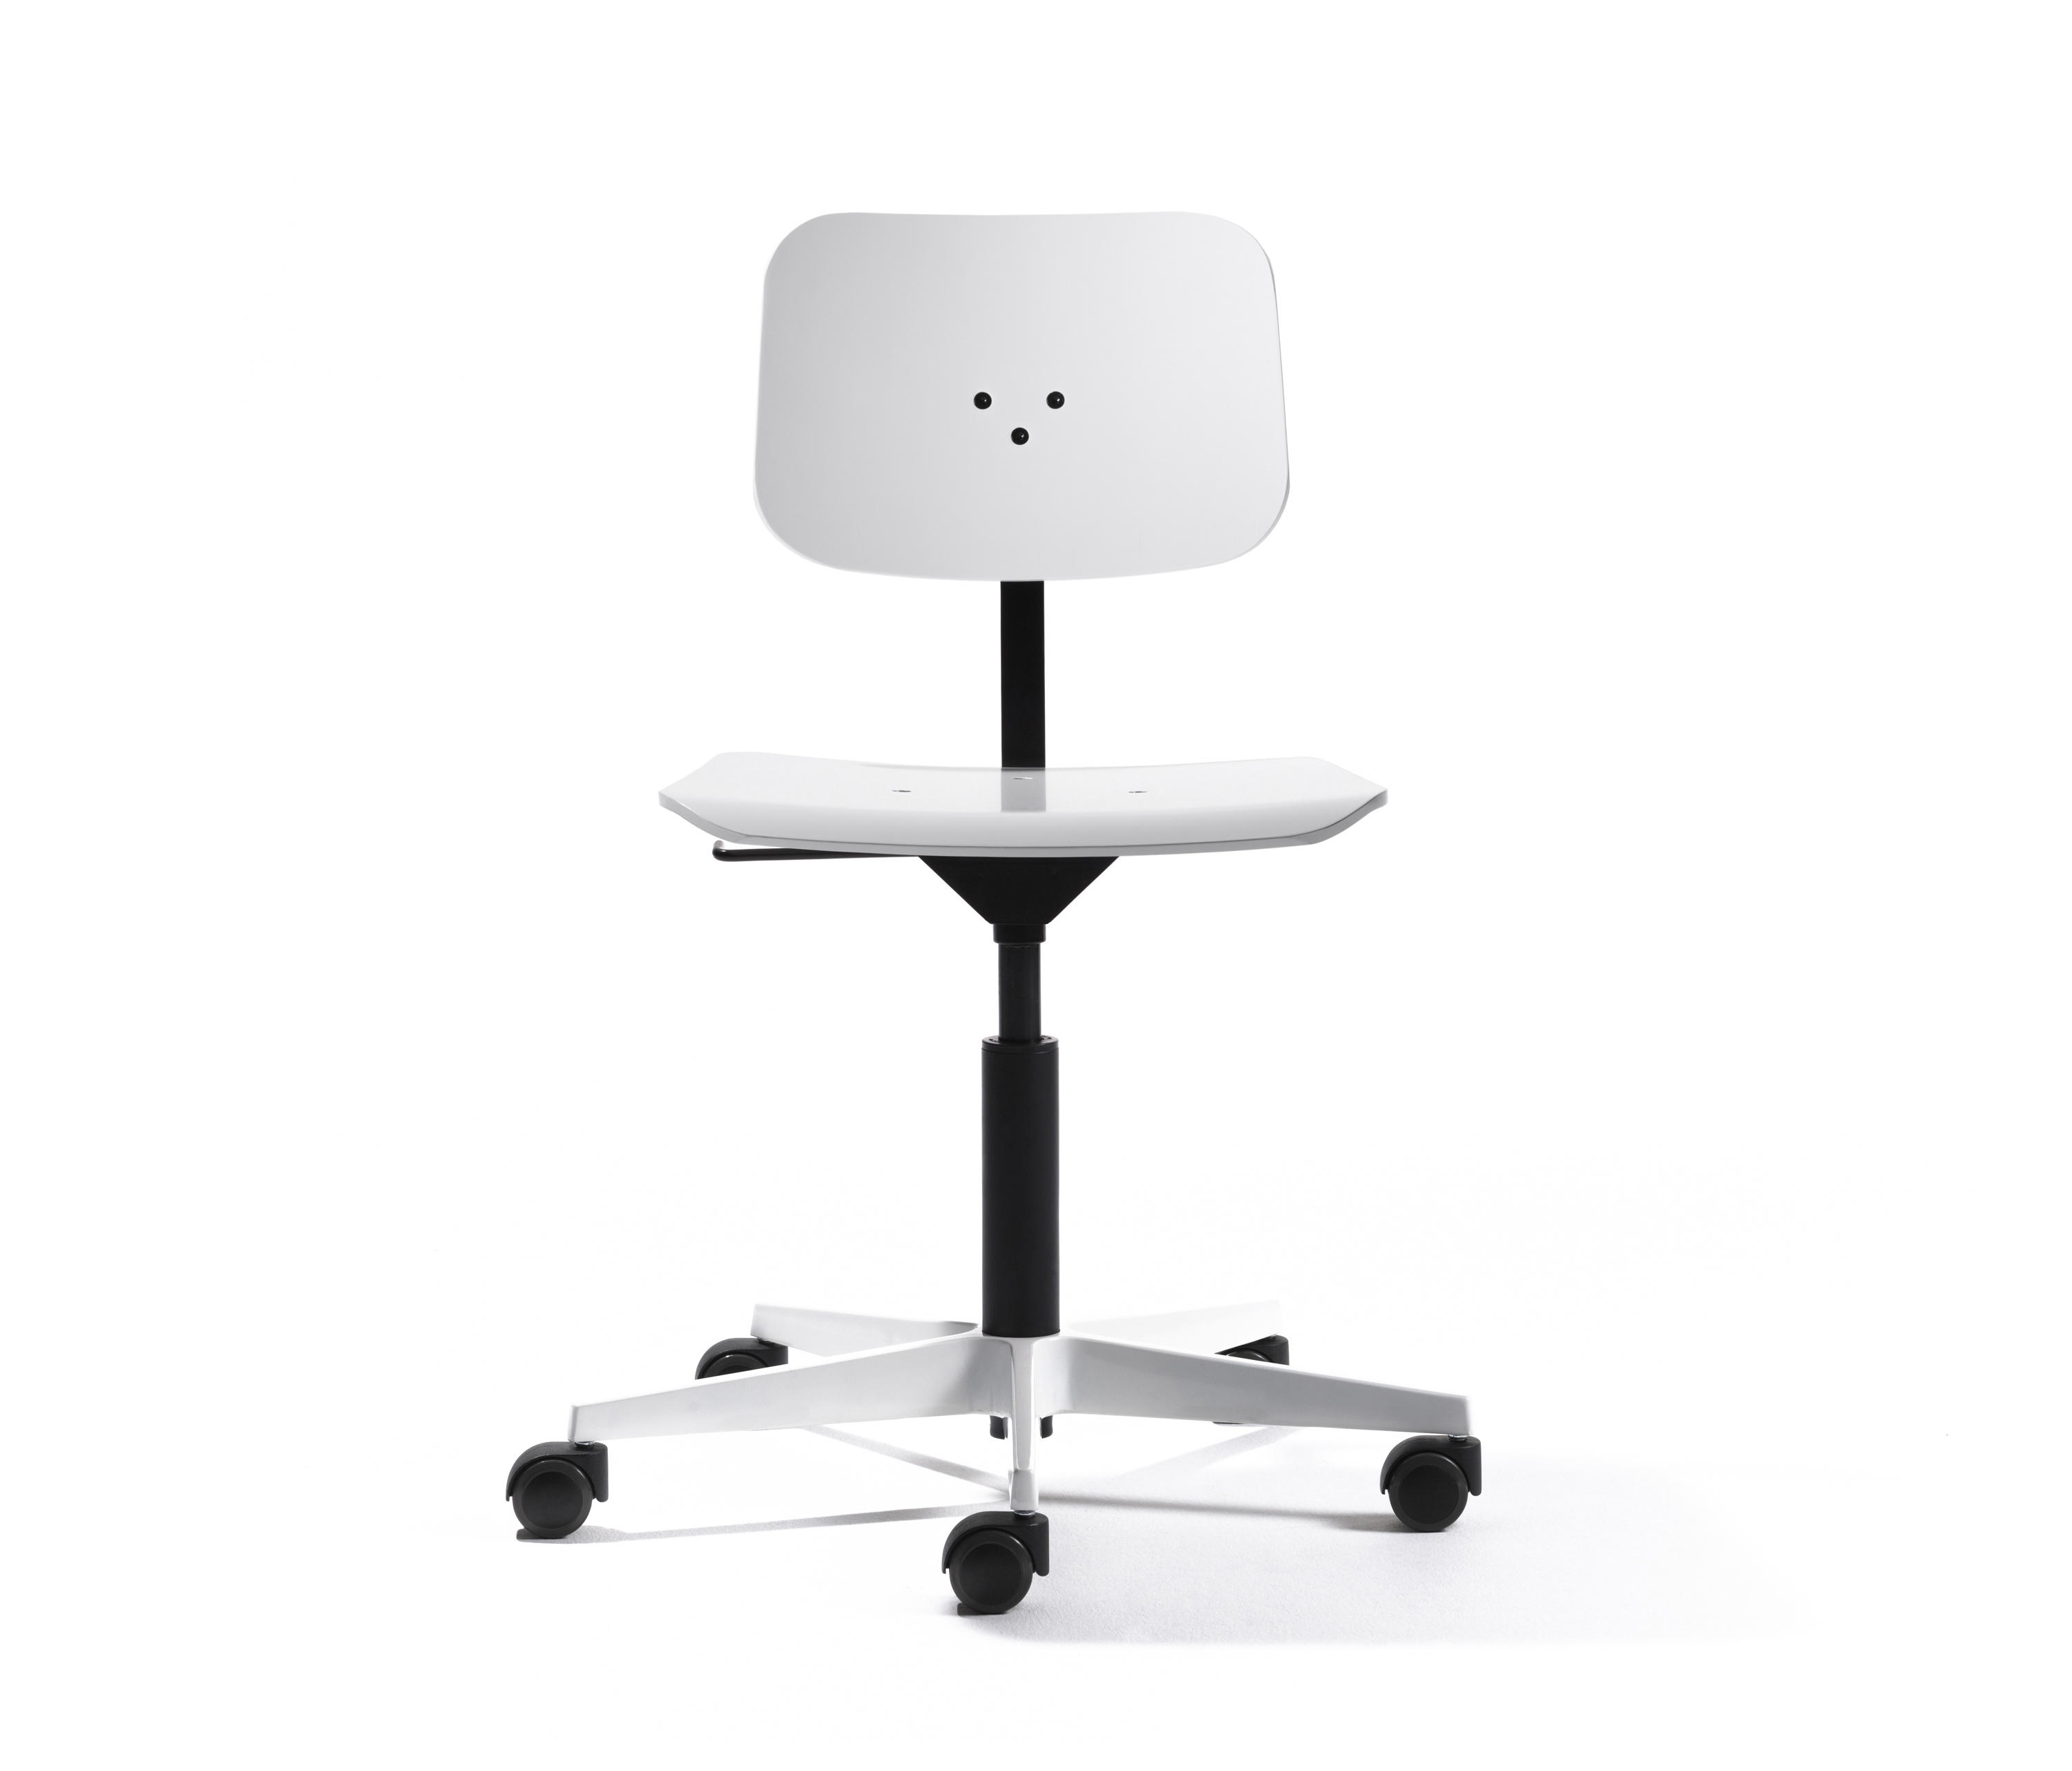 ... Mr. Square Working Chair By Richard Lampert   Task Chairs